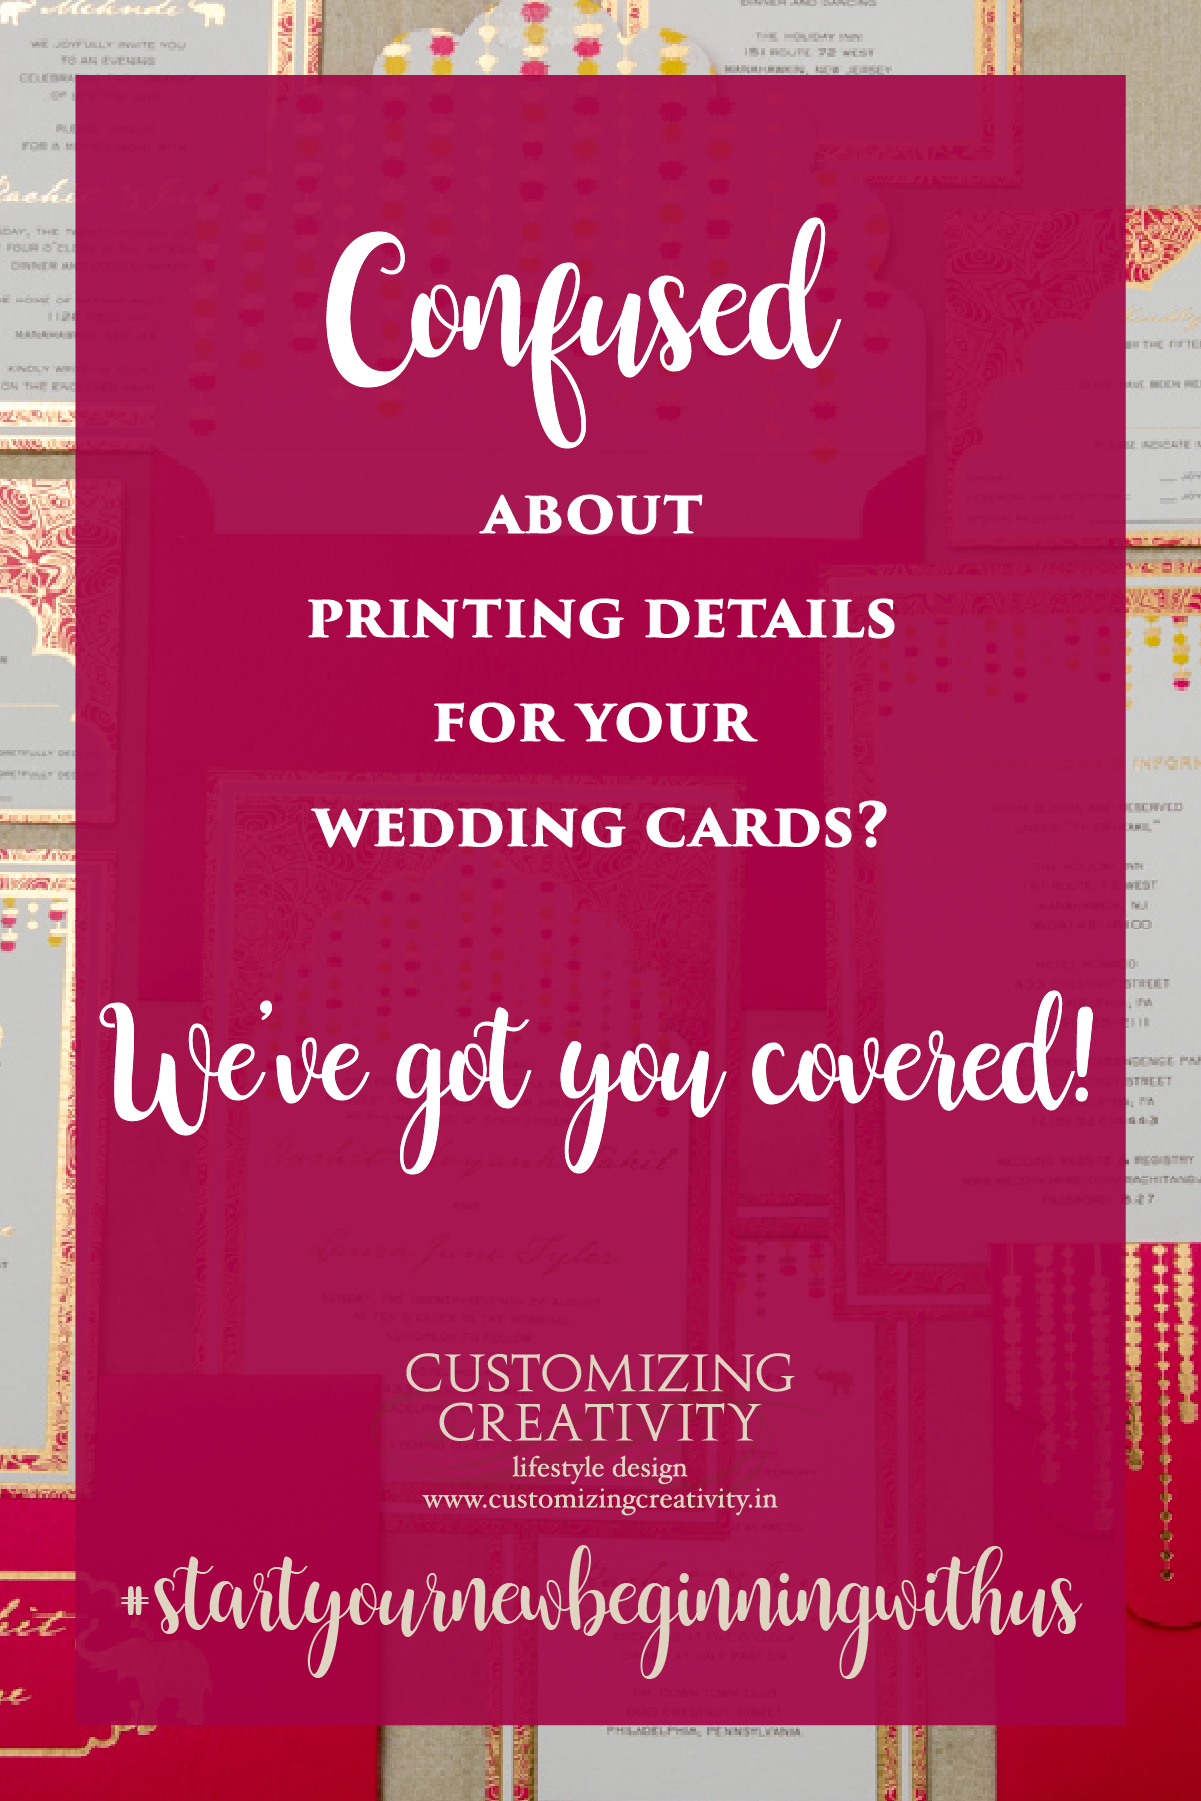 Wedding Invites, Wedding cards, weddings, wedding, invites, invitation cards, indian wedding, wedding planning, wedding ideas, wedding inspiration